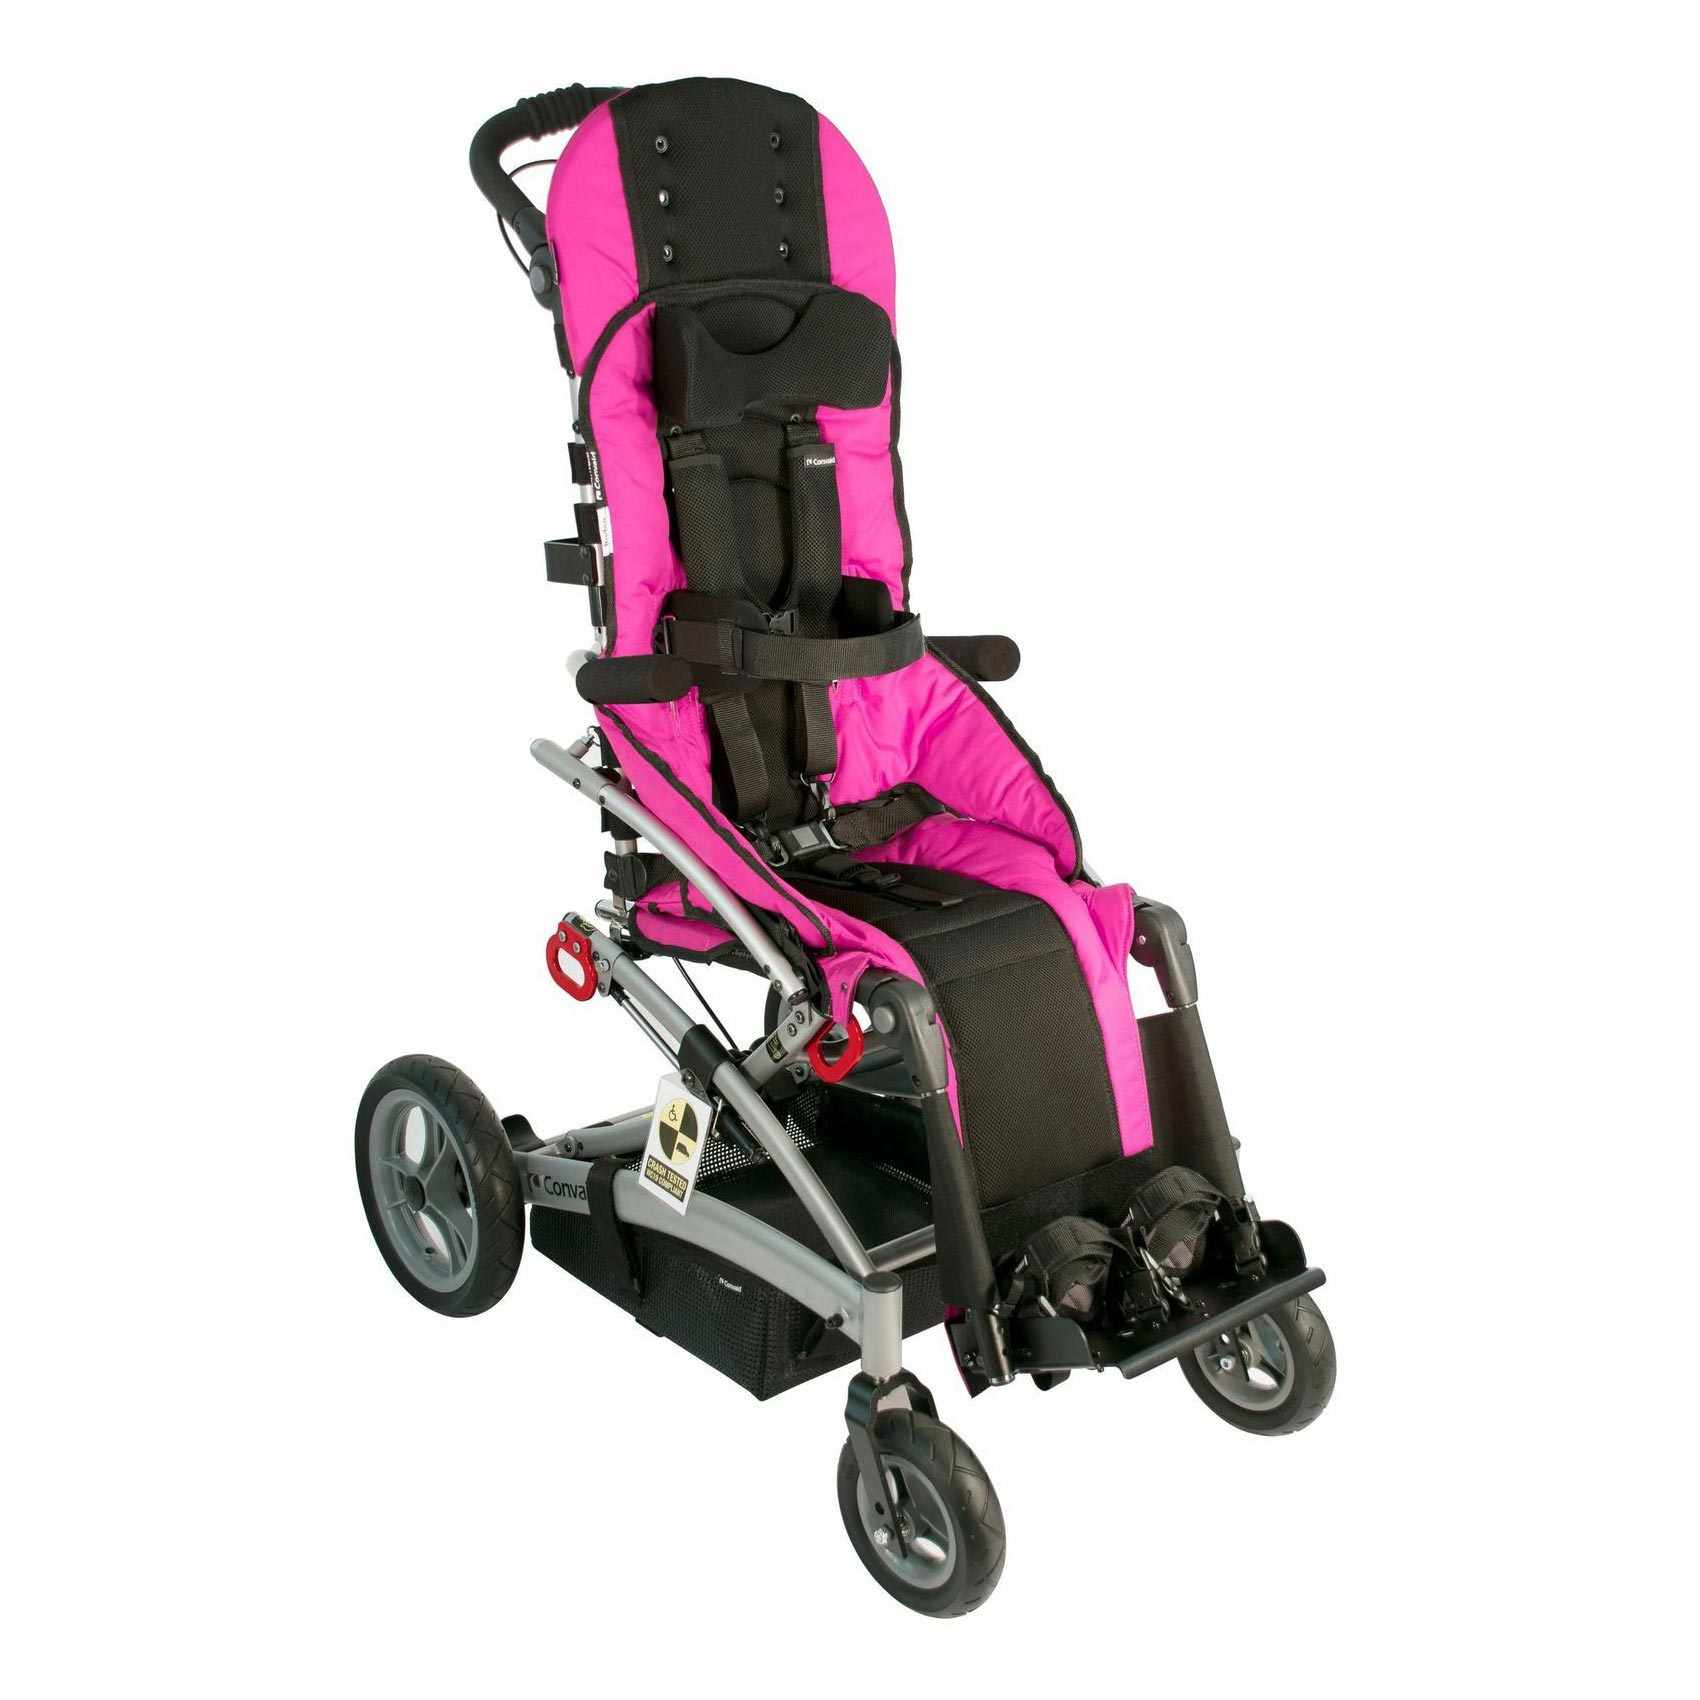 Convaid rodeo tilt-in space wheelchair